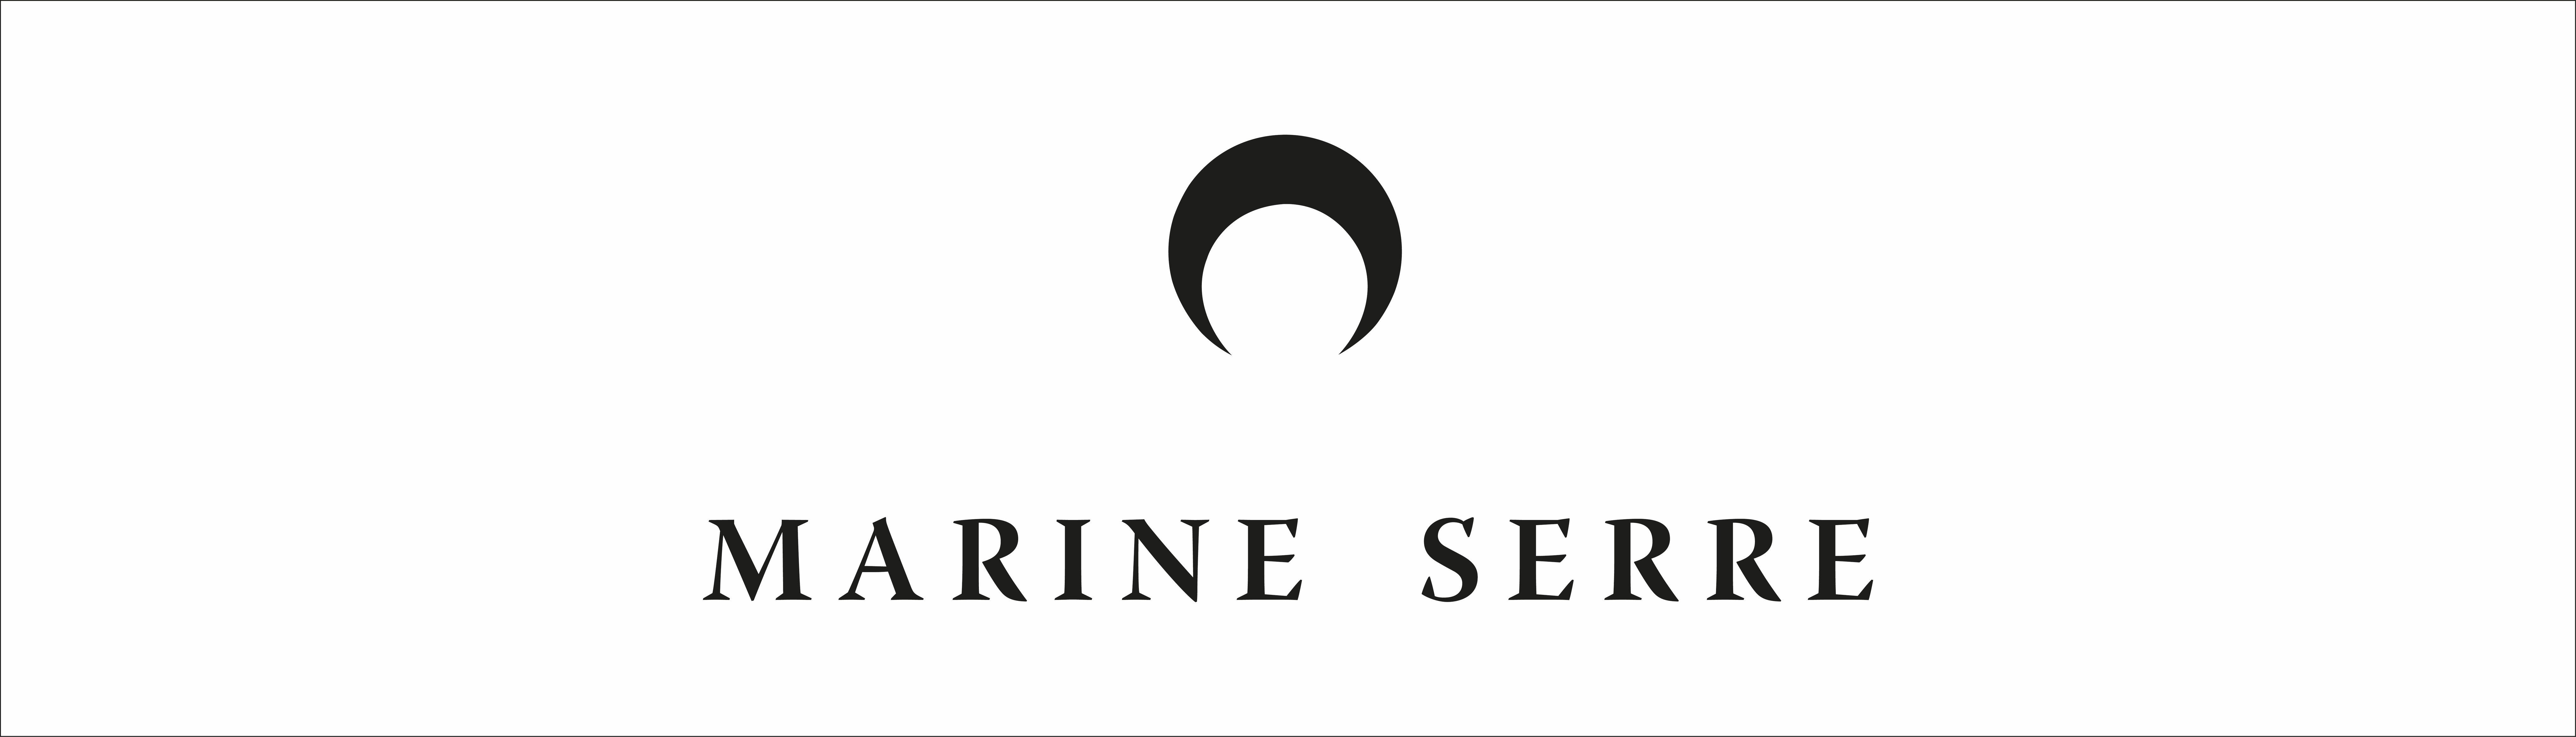 Marine Serre S Page Bof Careers The Business Of Fashion